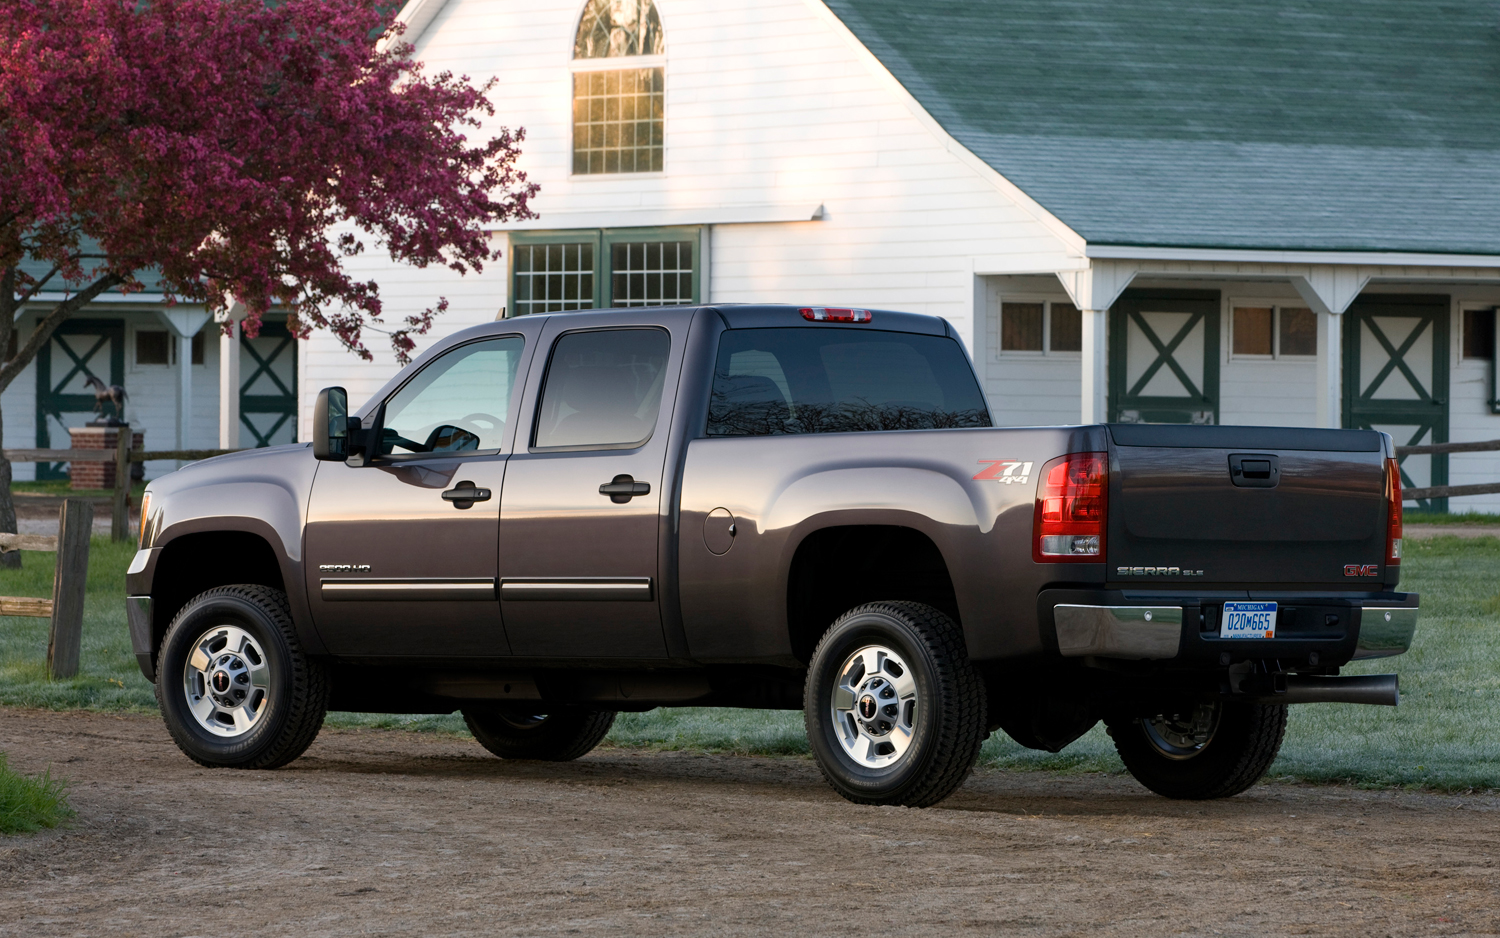 images en gmc vehicles states sierra galleries pages detail denali united content photos us hd pressroom media